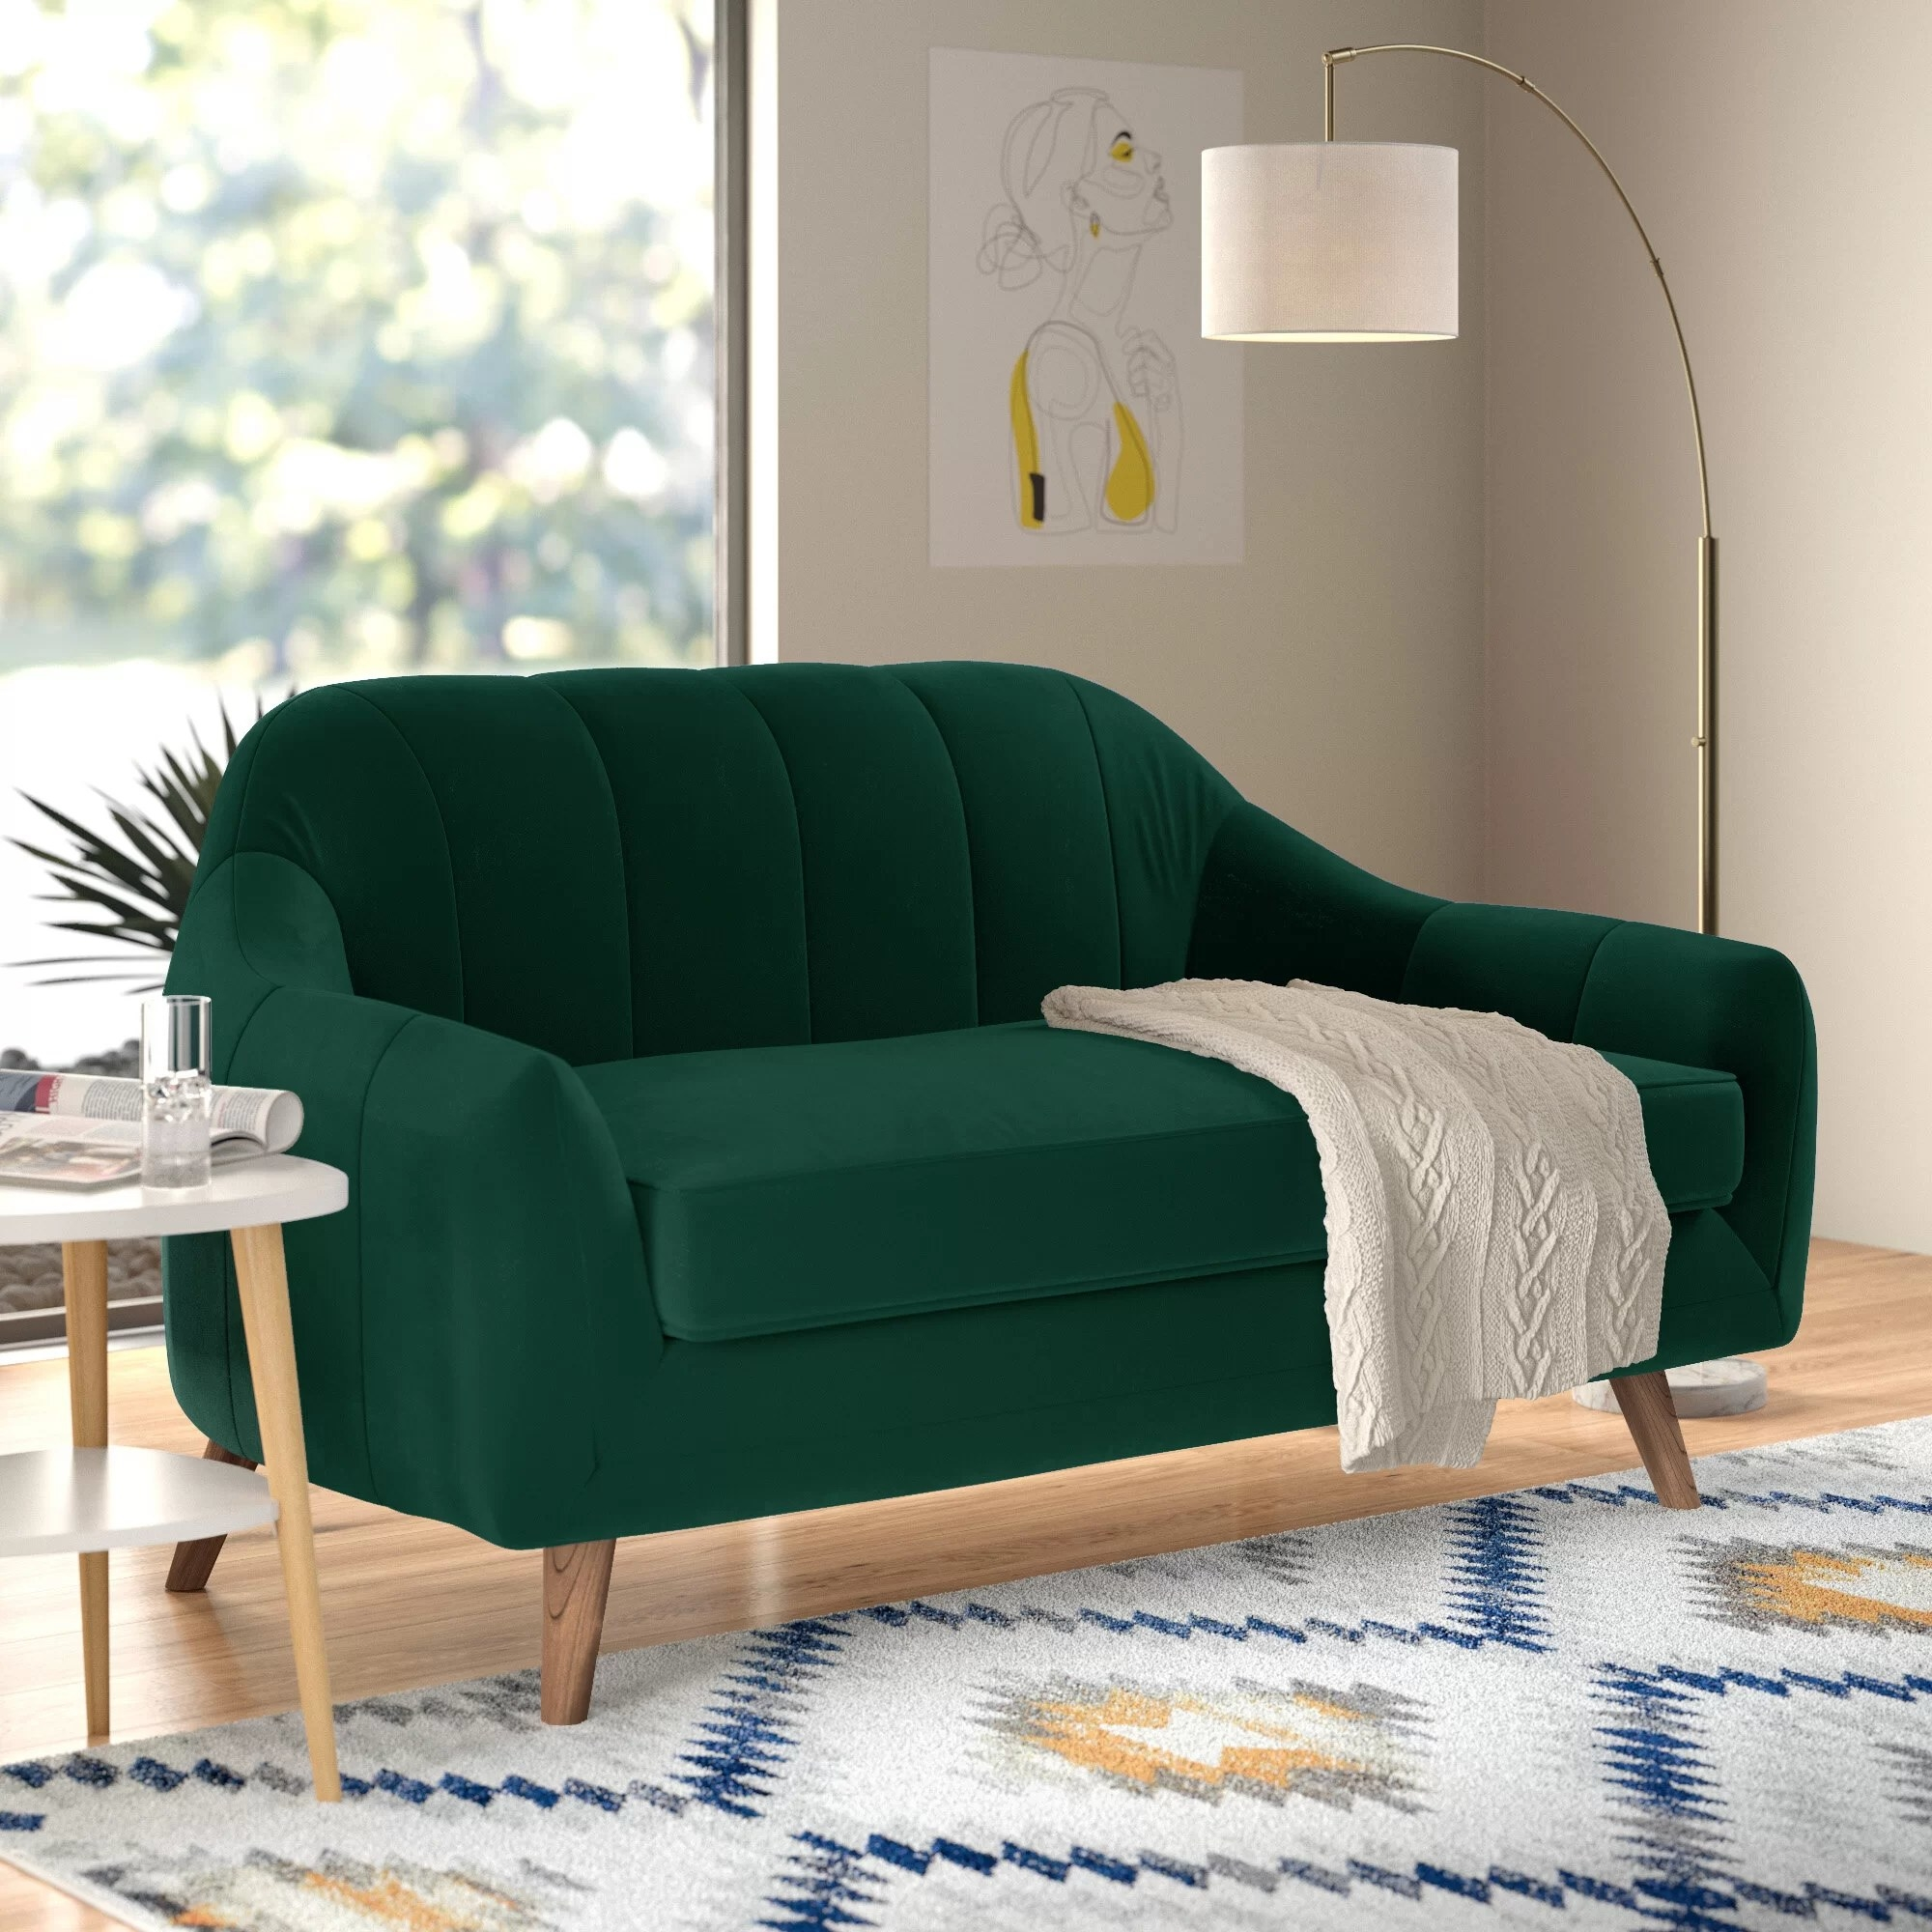 The forest green loveseat with vertical tufting, and flared arms and legs in a living room